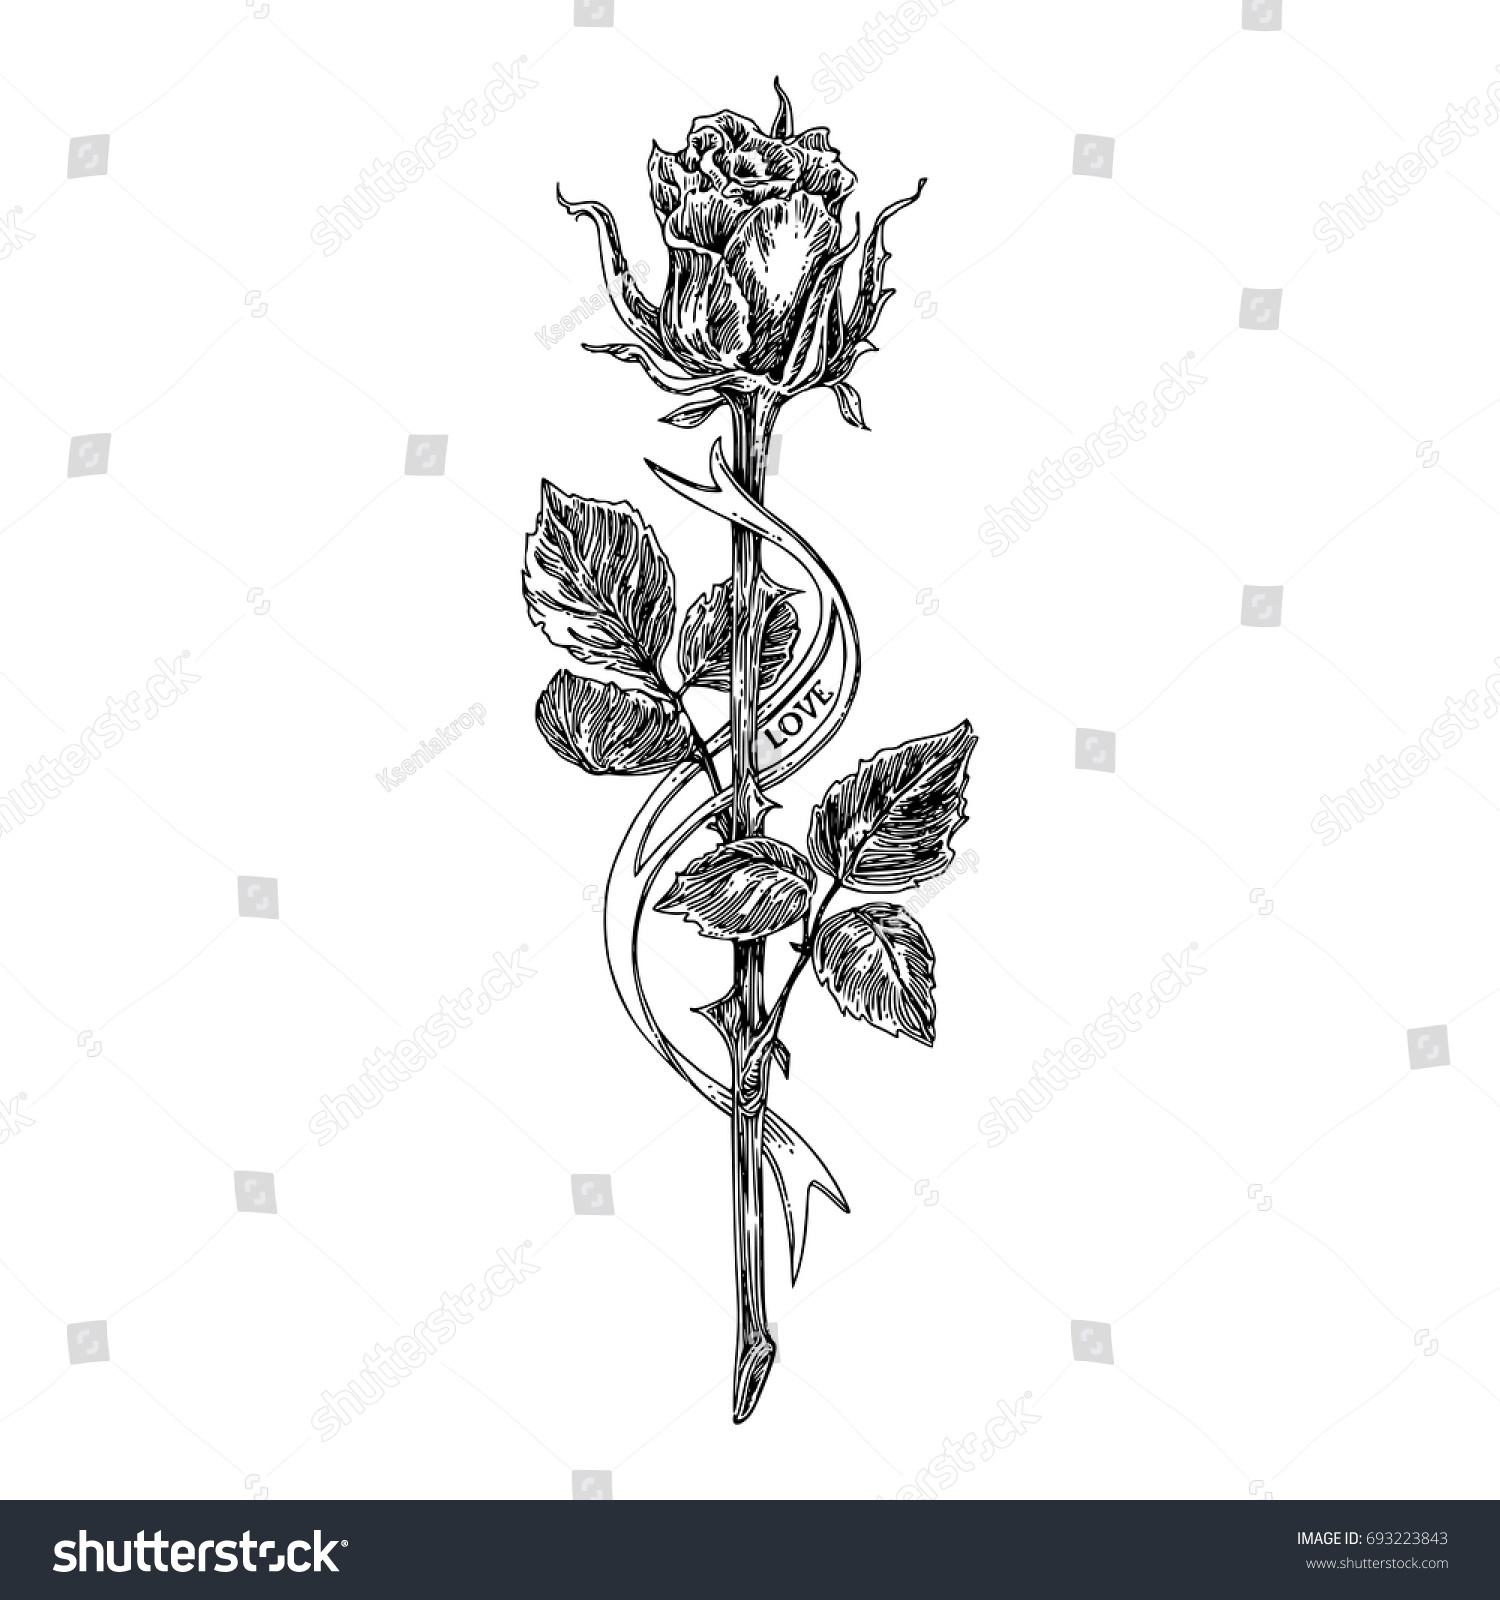 Sketch Tattoo Rose On Long Stem Stock Vector Royalty Free 693223843